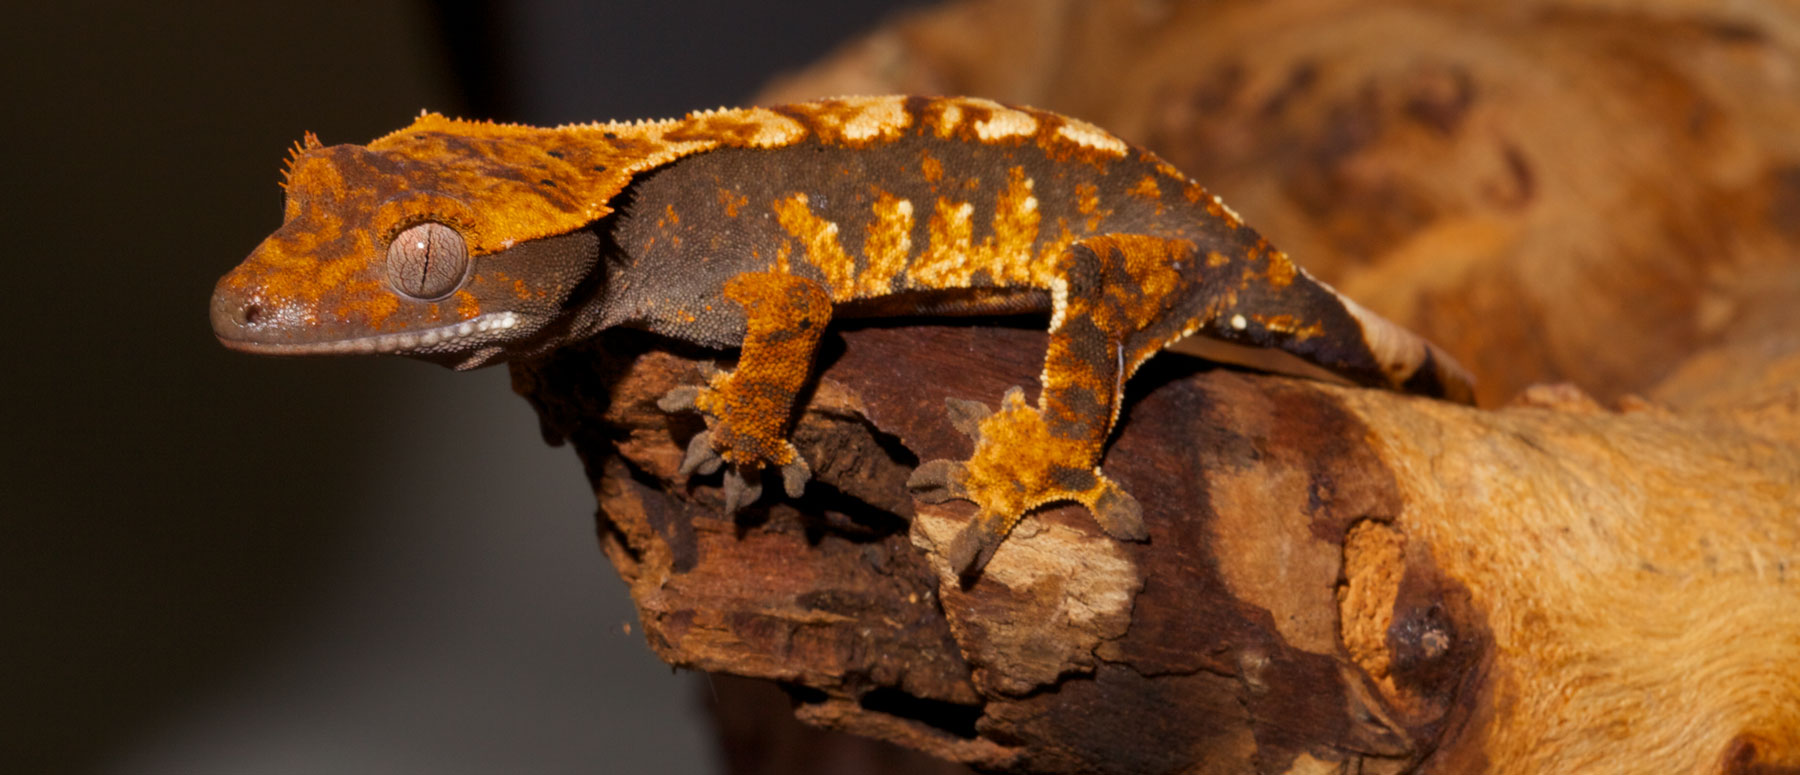 Crested Gecko Zoo Med Laboratories Inc